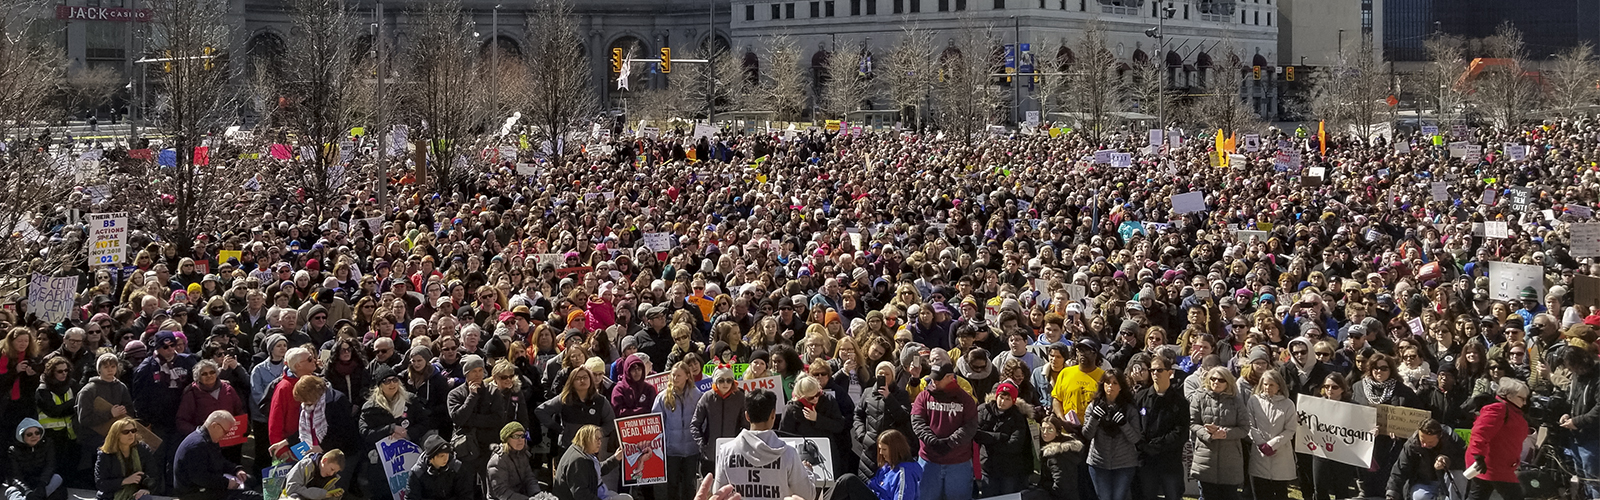 Shaker Heights High School junior Kevin LaMonica speaks at the Cleveland March For Our Lives <span class='image-credits'>Bob Perkoski</span>